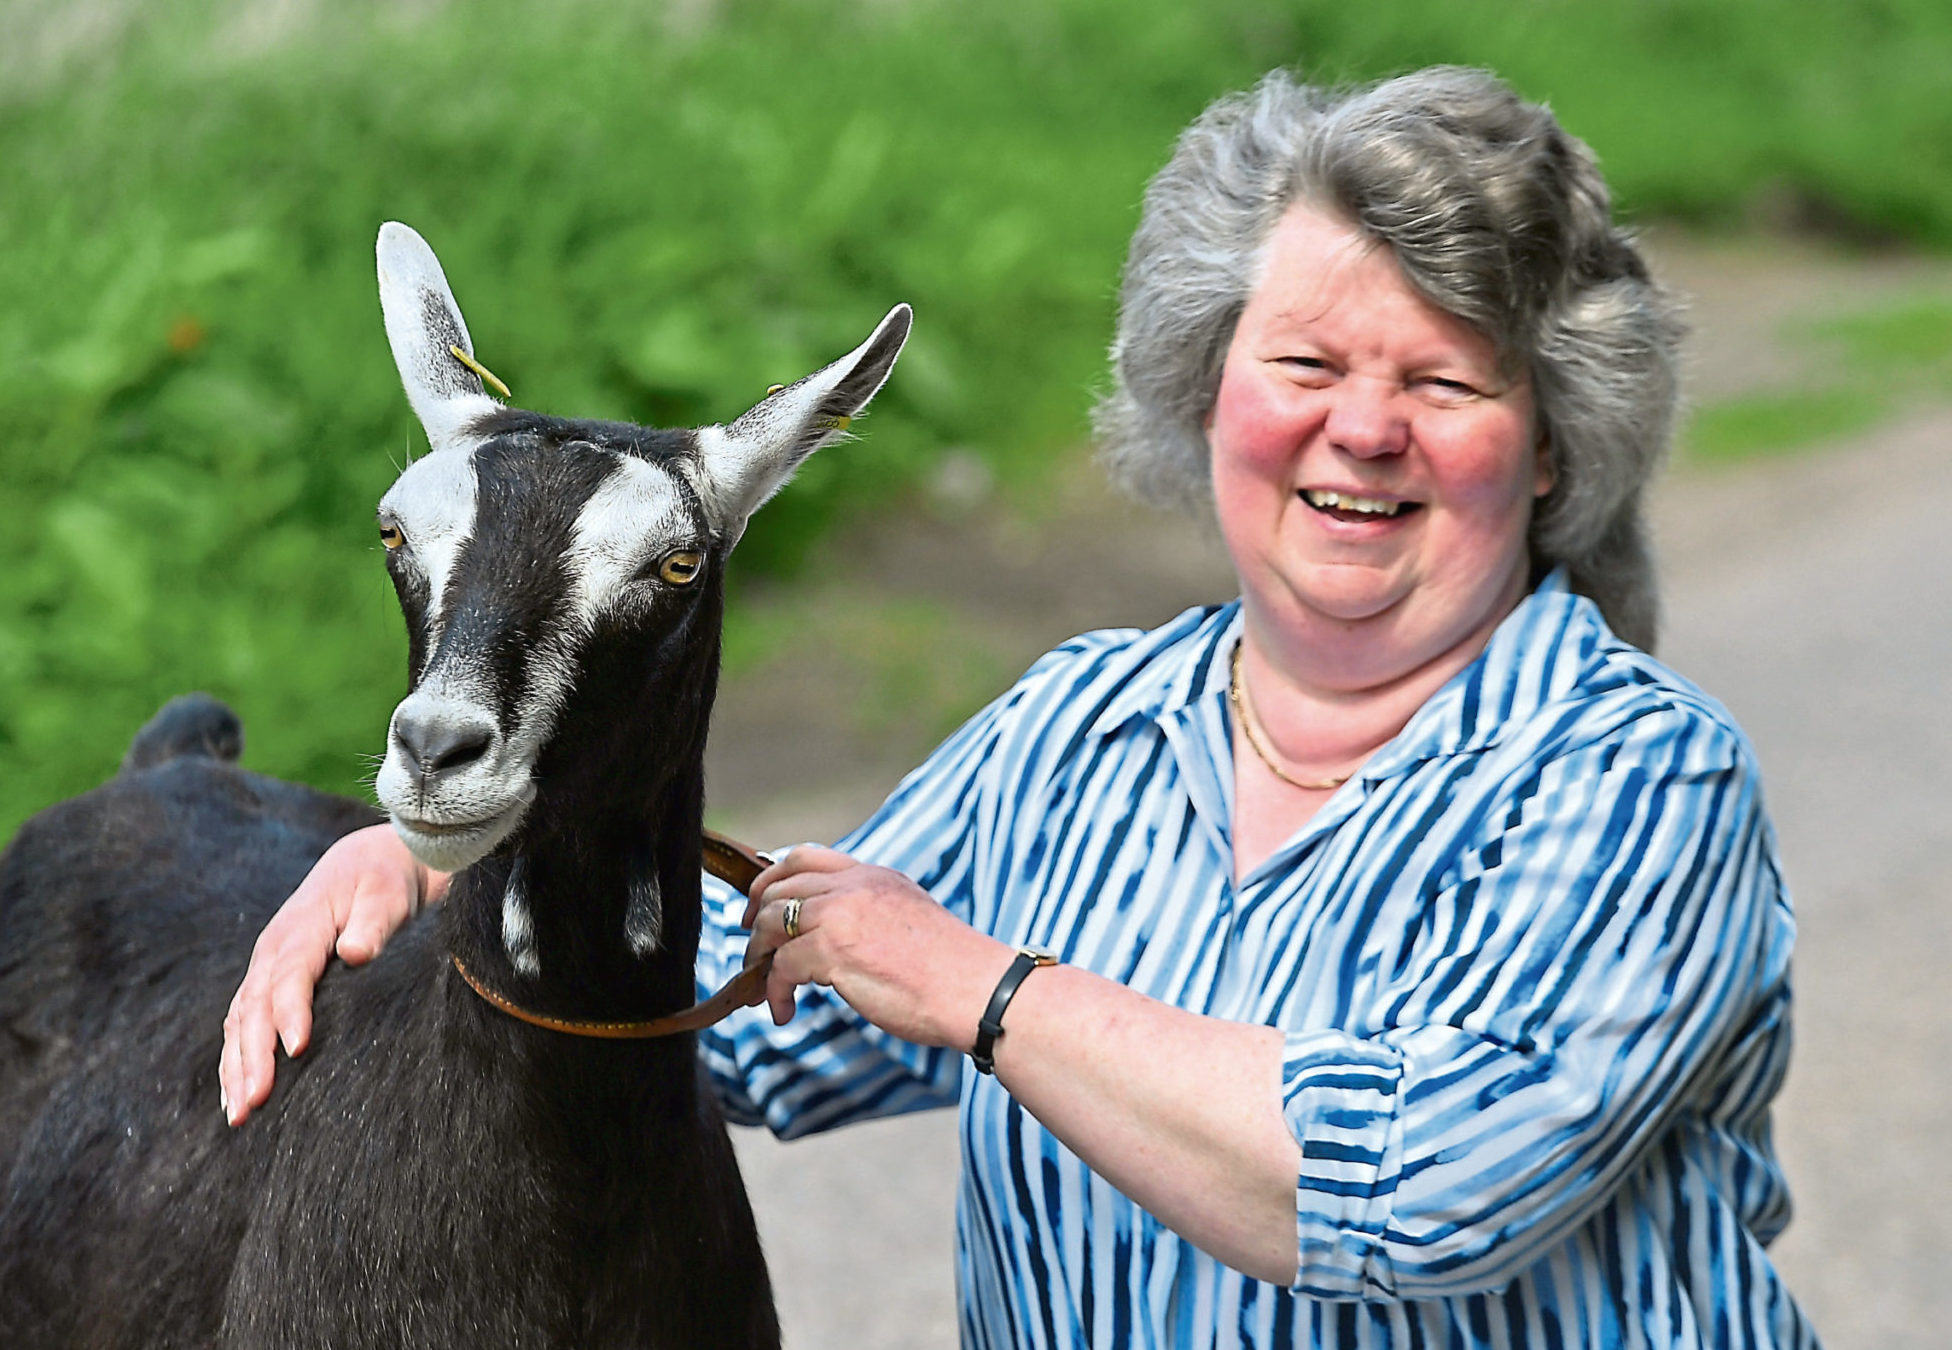 Agnes Aitken will be judging the goats section at the Scottish Agricultural Show. Picture by Chris Sumner.